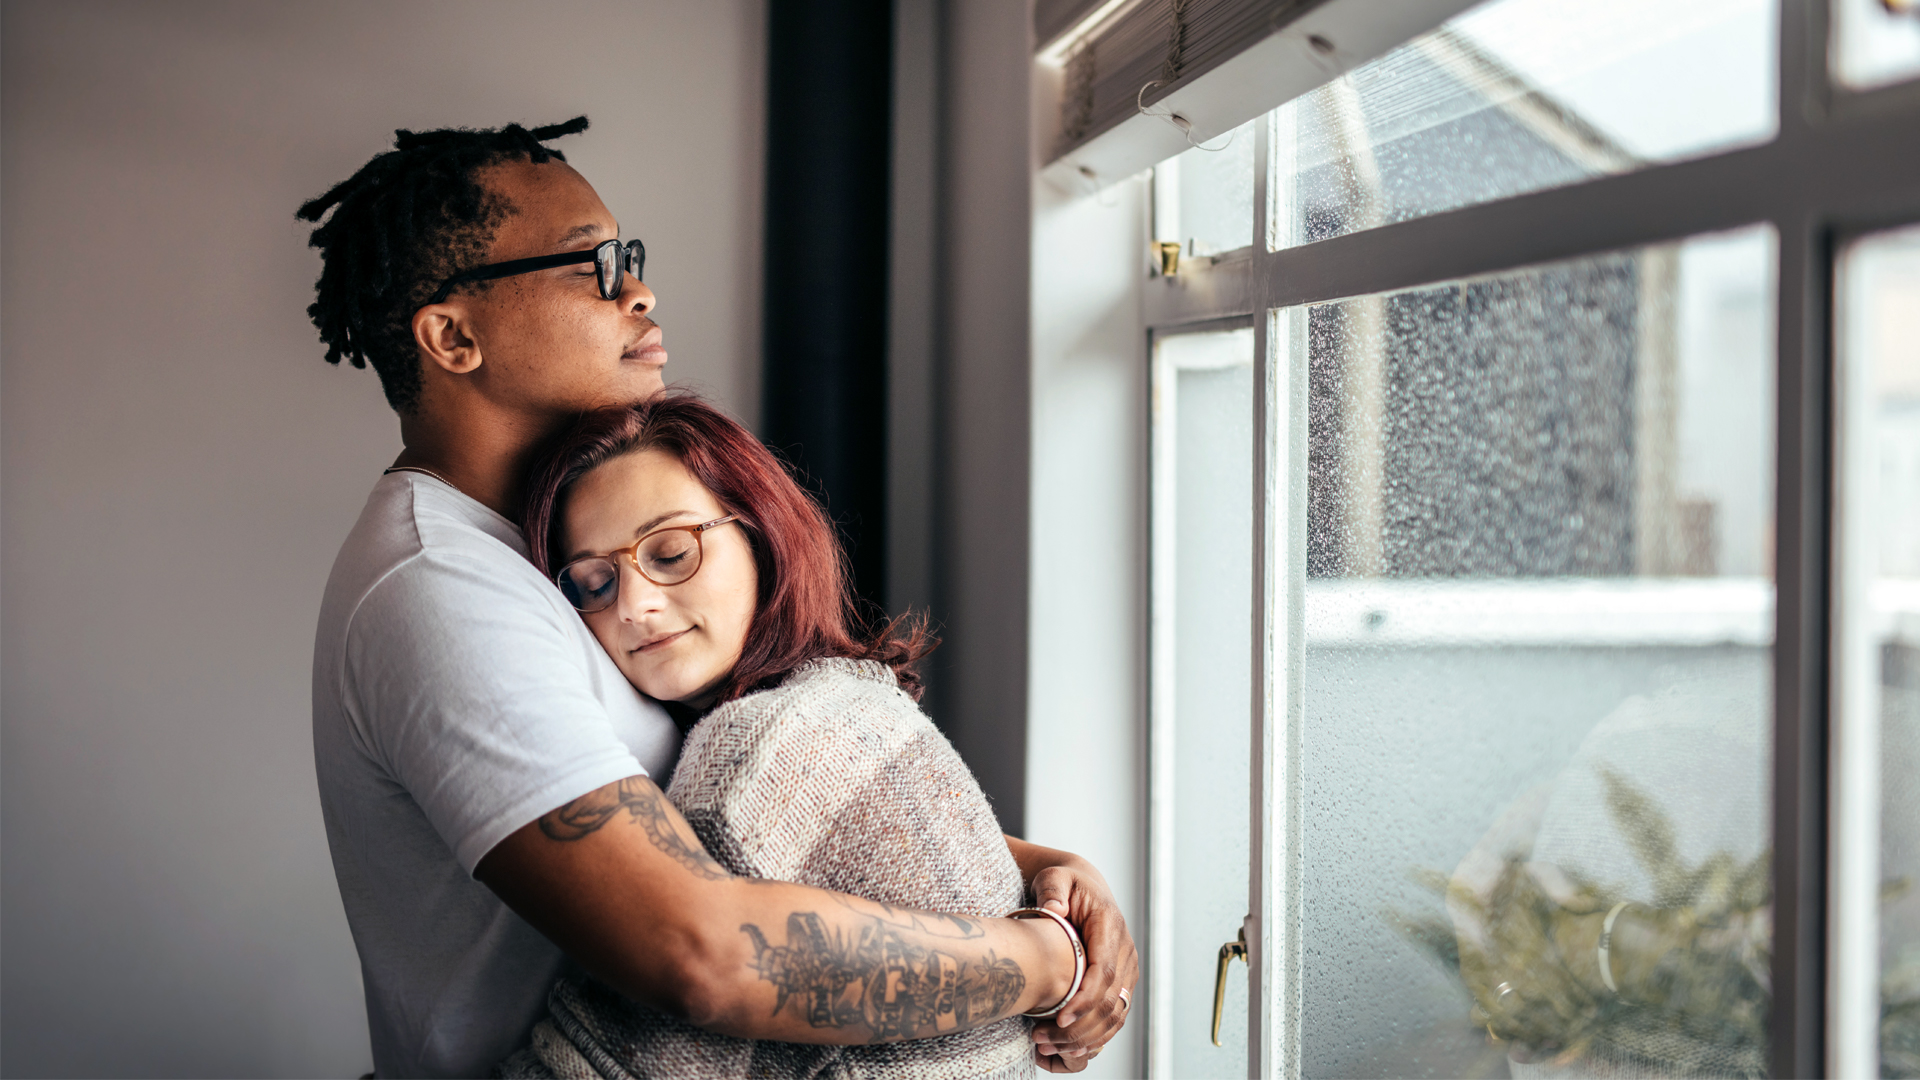 Interracial couple hugging near window